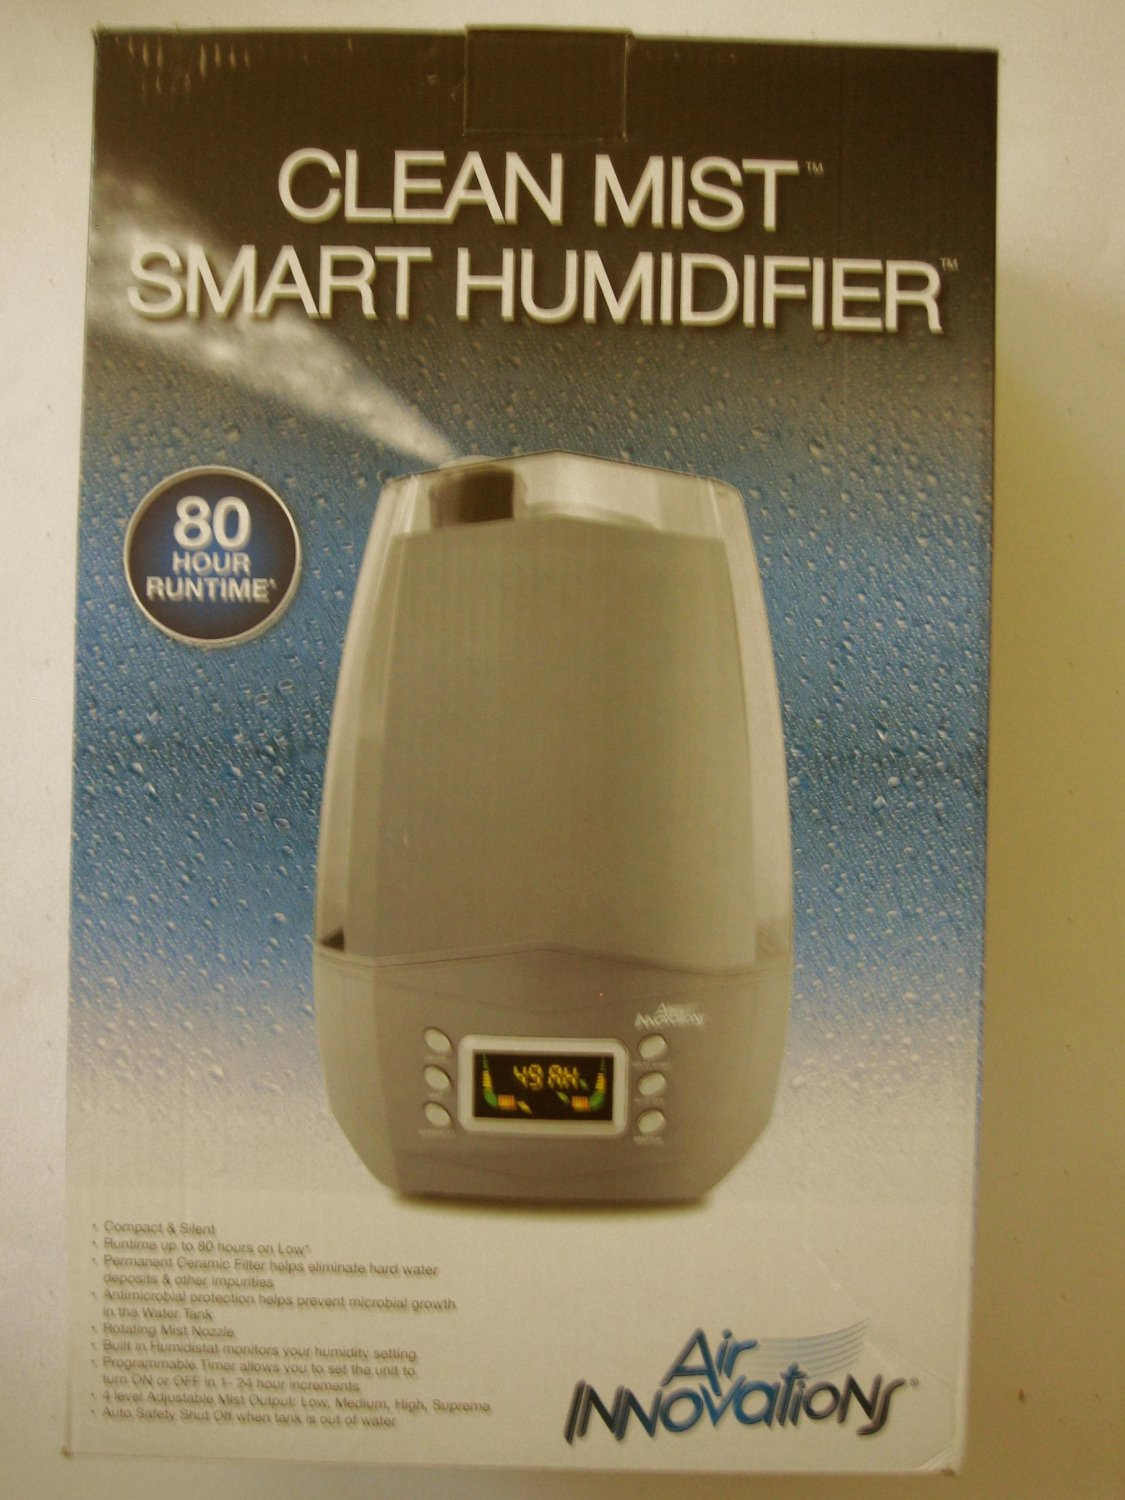 NEW Air Innovations MH-512 Digital Clean Mist Humidifier 5.7L Platinum